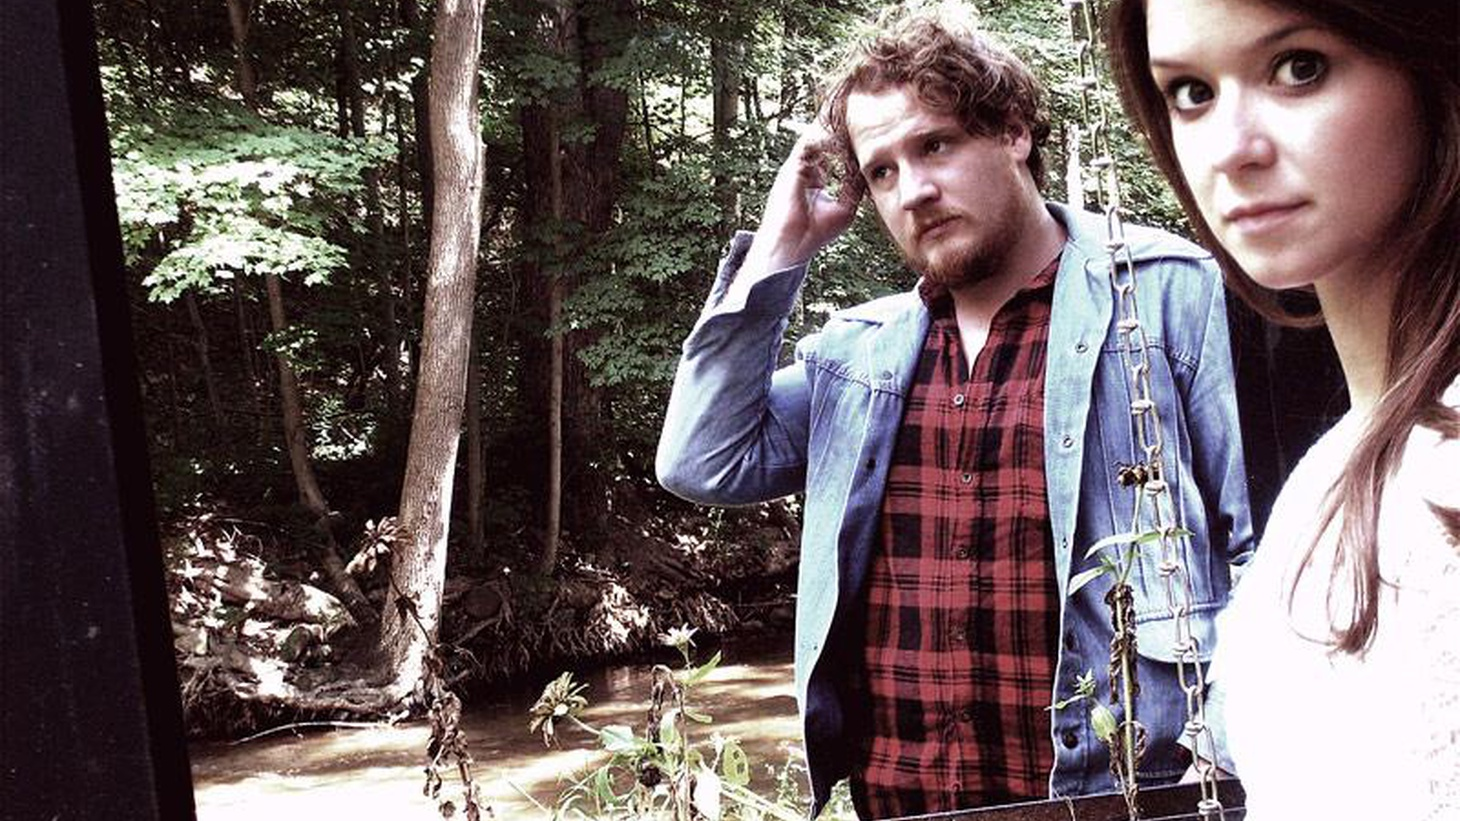 When songwriter Michael Nau decided to take a break from his indie outfit Page France, Cotton Jones was born. The new project has a different musical bent, as we hear on the EP,Rio Ranger.